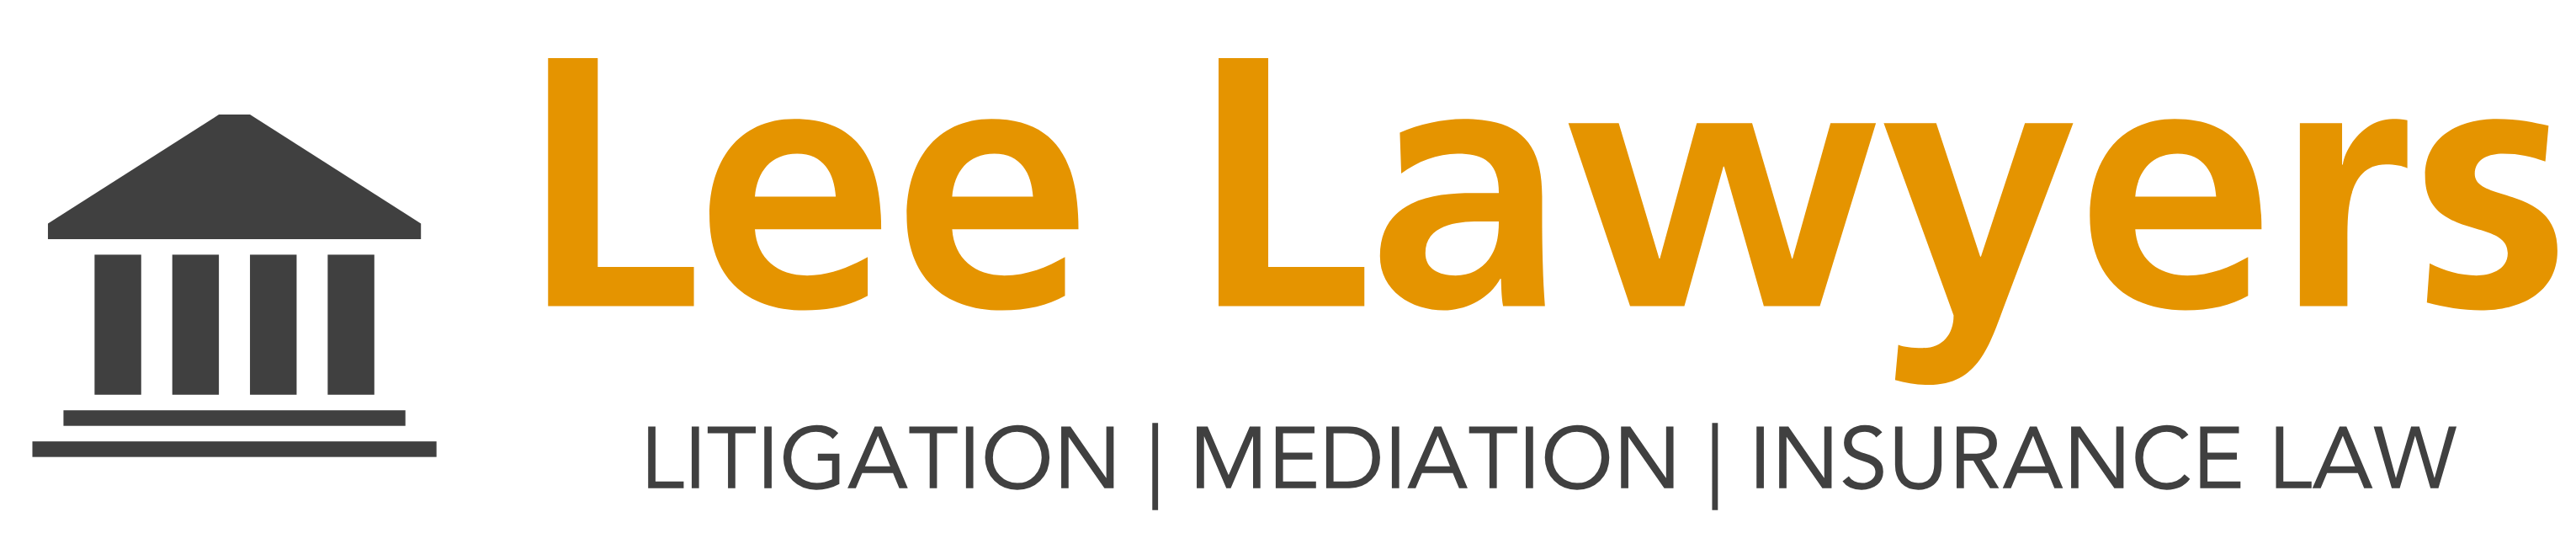 Lee Lawyers | Litigation Mediation Insurance Law